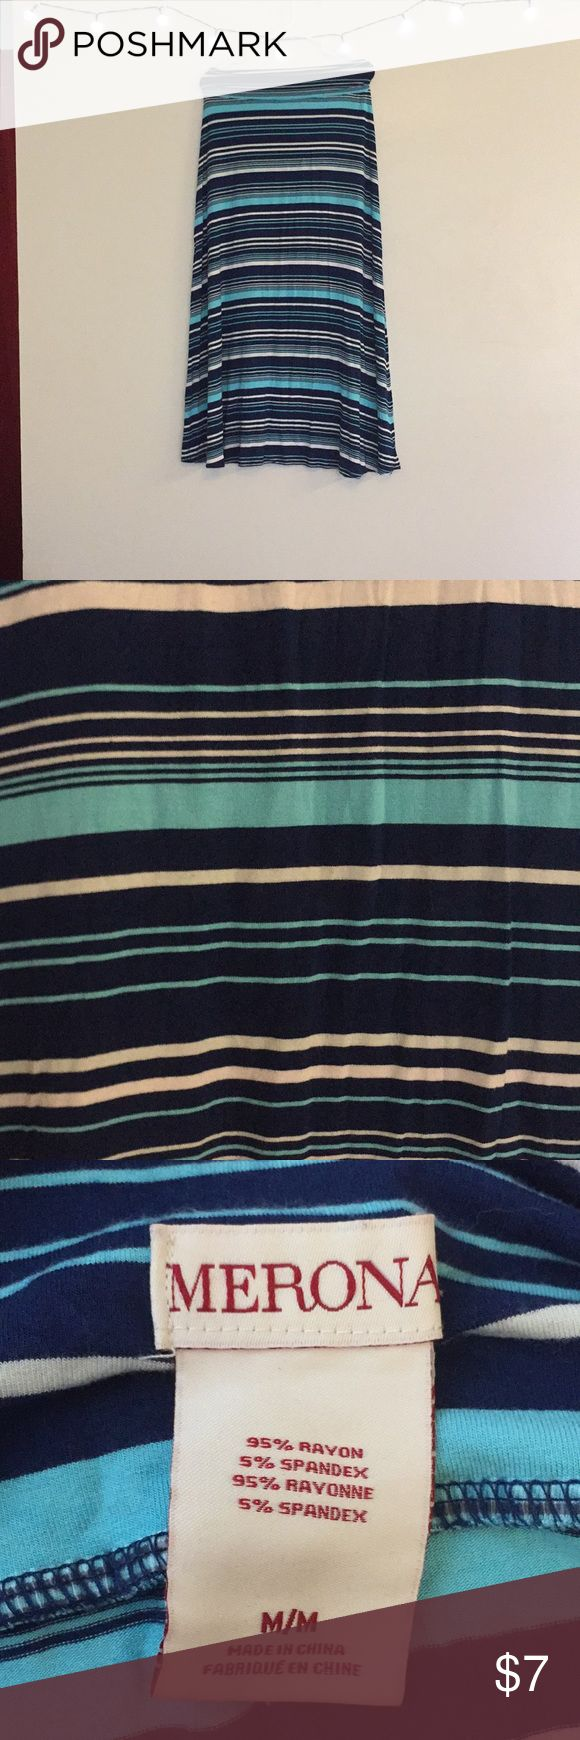 Merona Blue and White Stripped Maxi Skirt T shirt material soft and comfortable maxi skirt. Only worn a few times and in like new condition. Merona Skirts Maxi